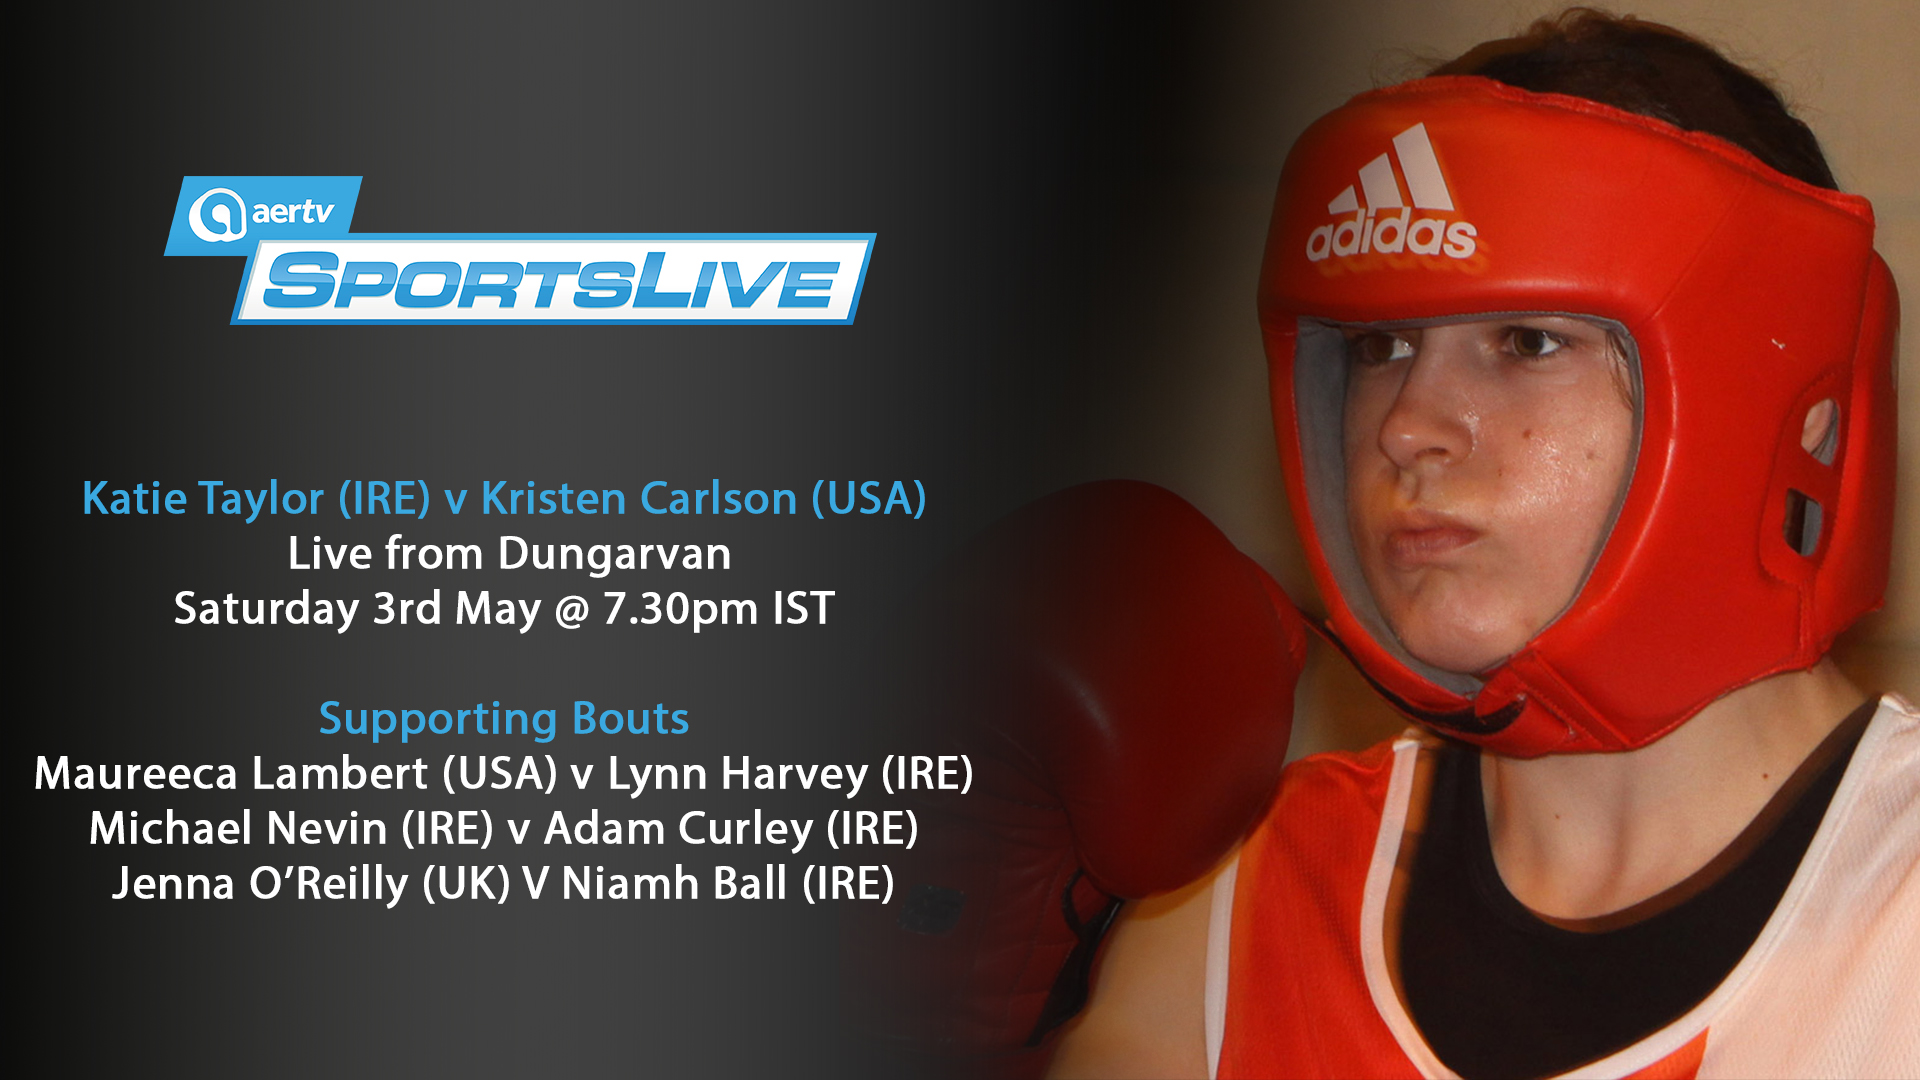 katie_taylor_placeholder_MAY2014_AERTV